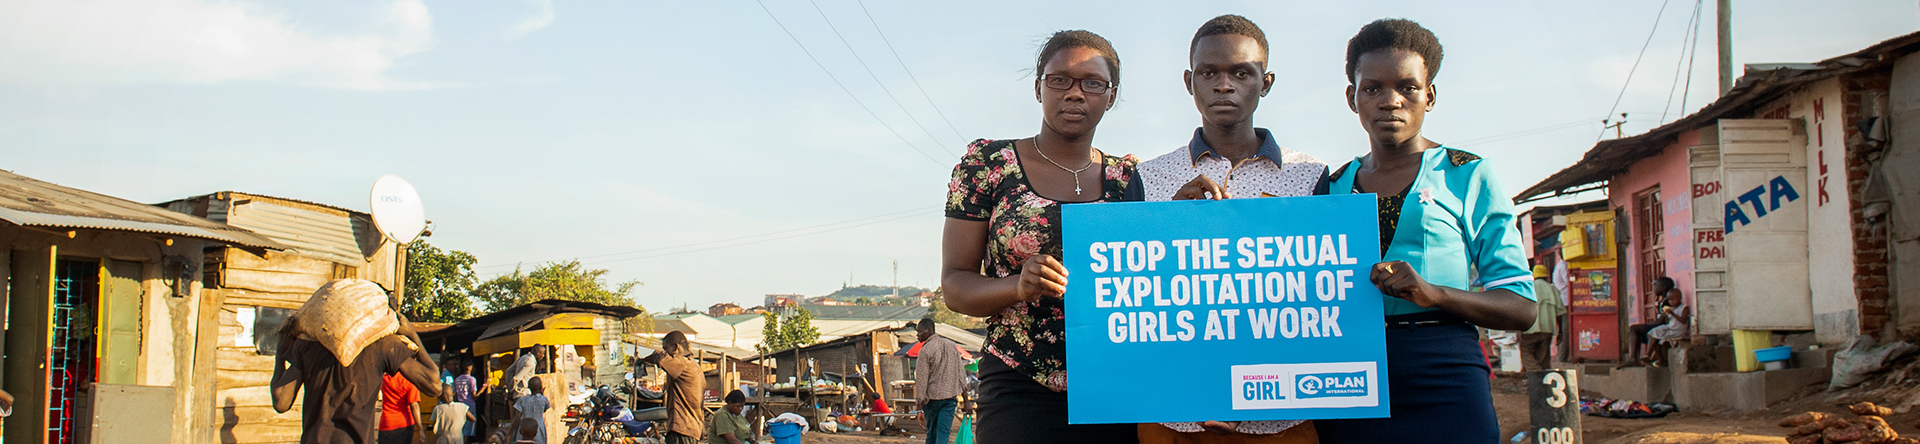 Stand with brave girls in Uganda to end sexual exploitation at work